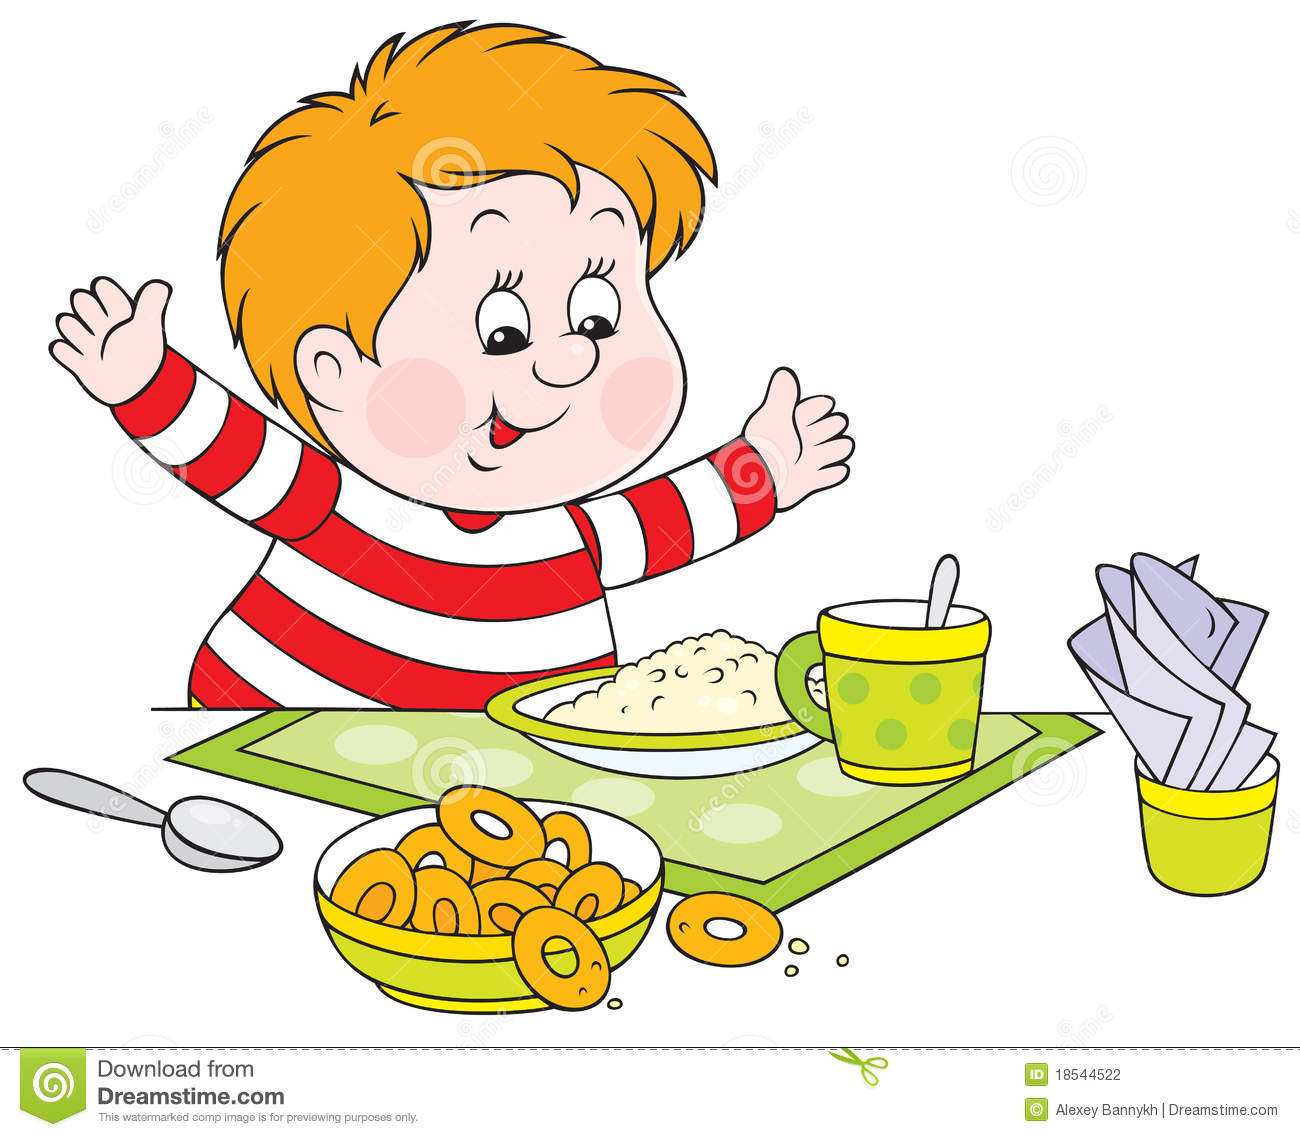 Breakfast Clipart Eating breakfast clipart - clipart kid